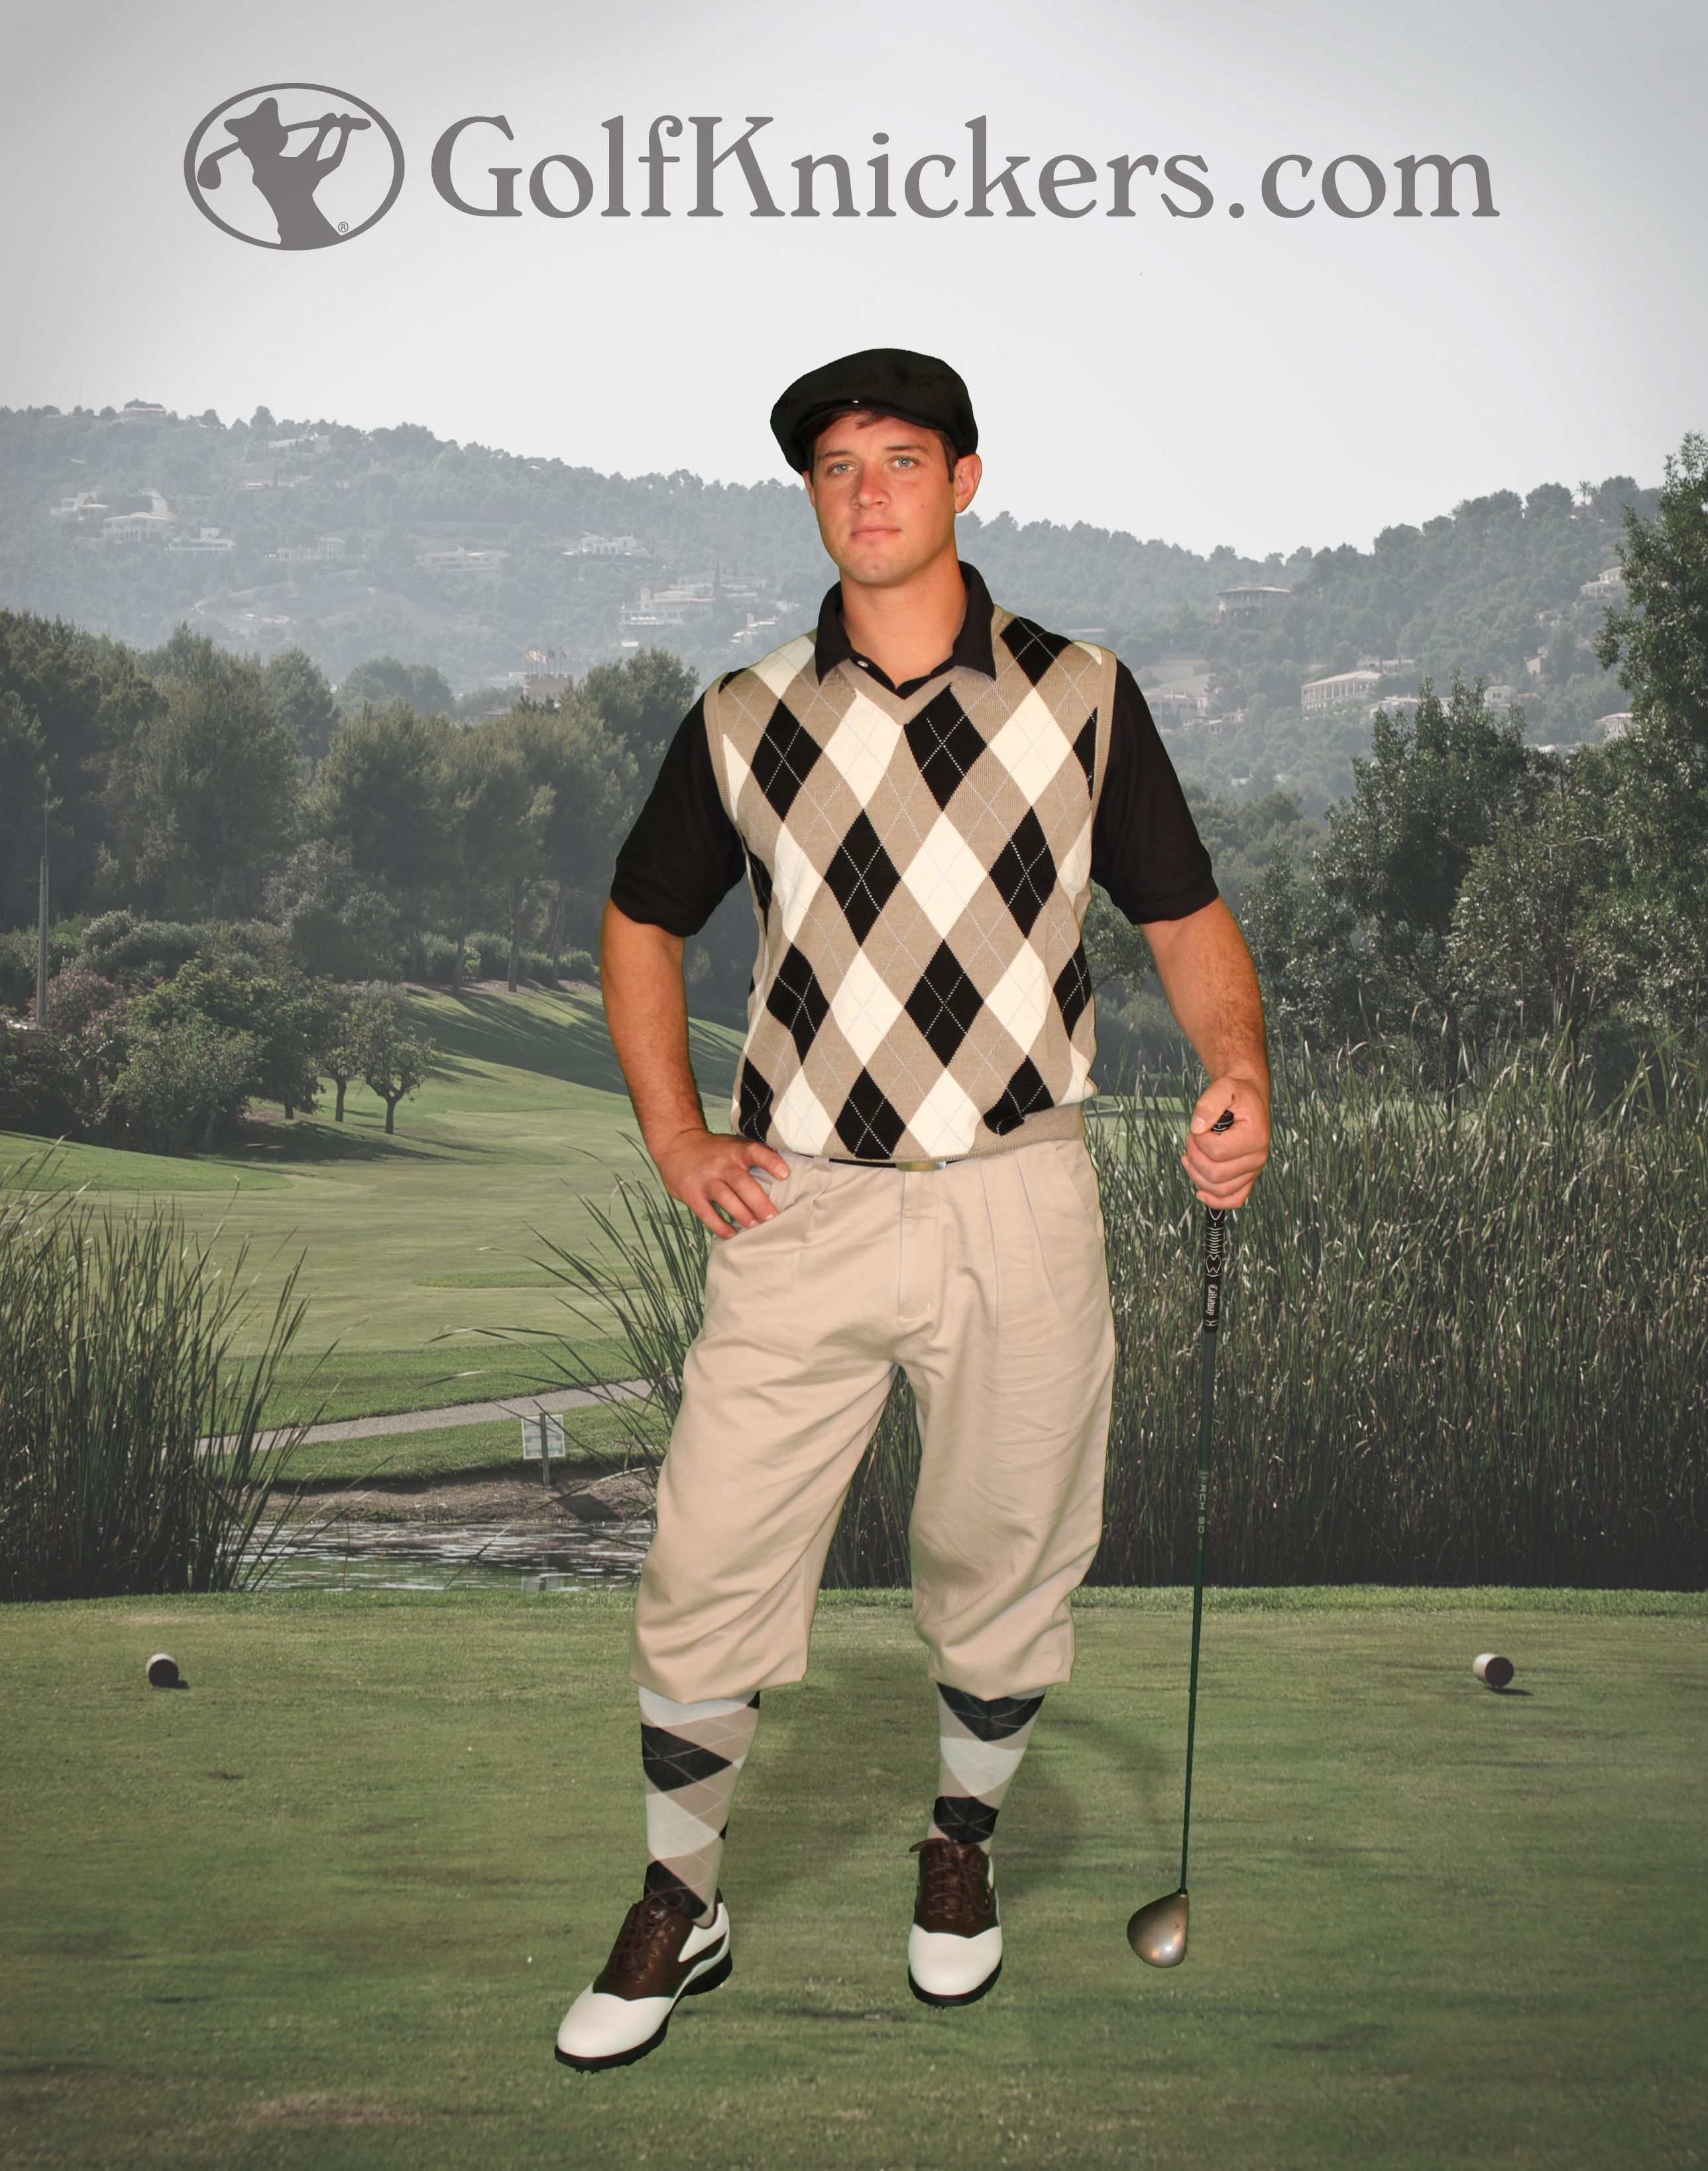 Plus Fours Knickers | ... at golf knickers and can only supply you ...